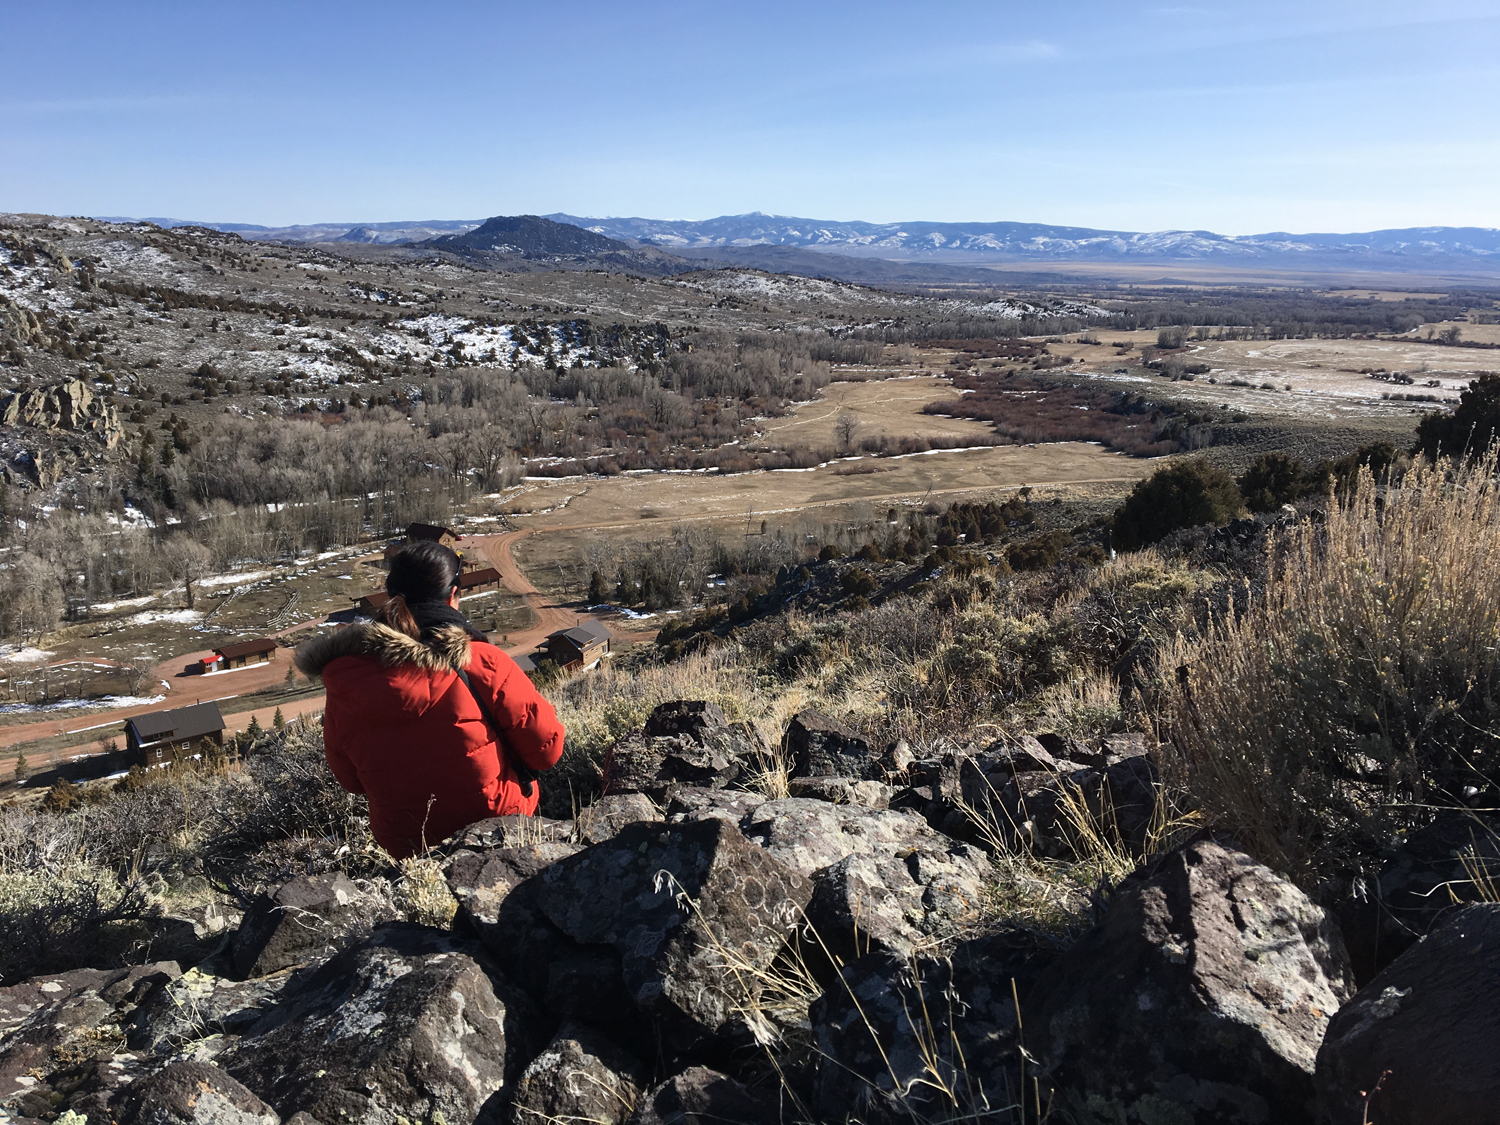 My fellow artist sketching the wide open spaces from Falcon's Peak. You can see our camp below left.